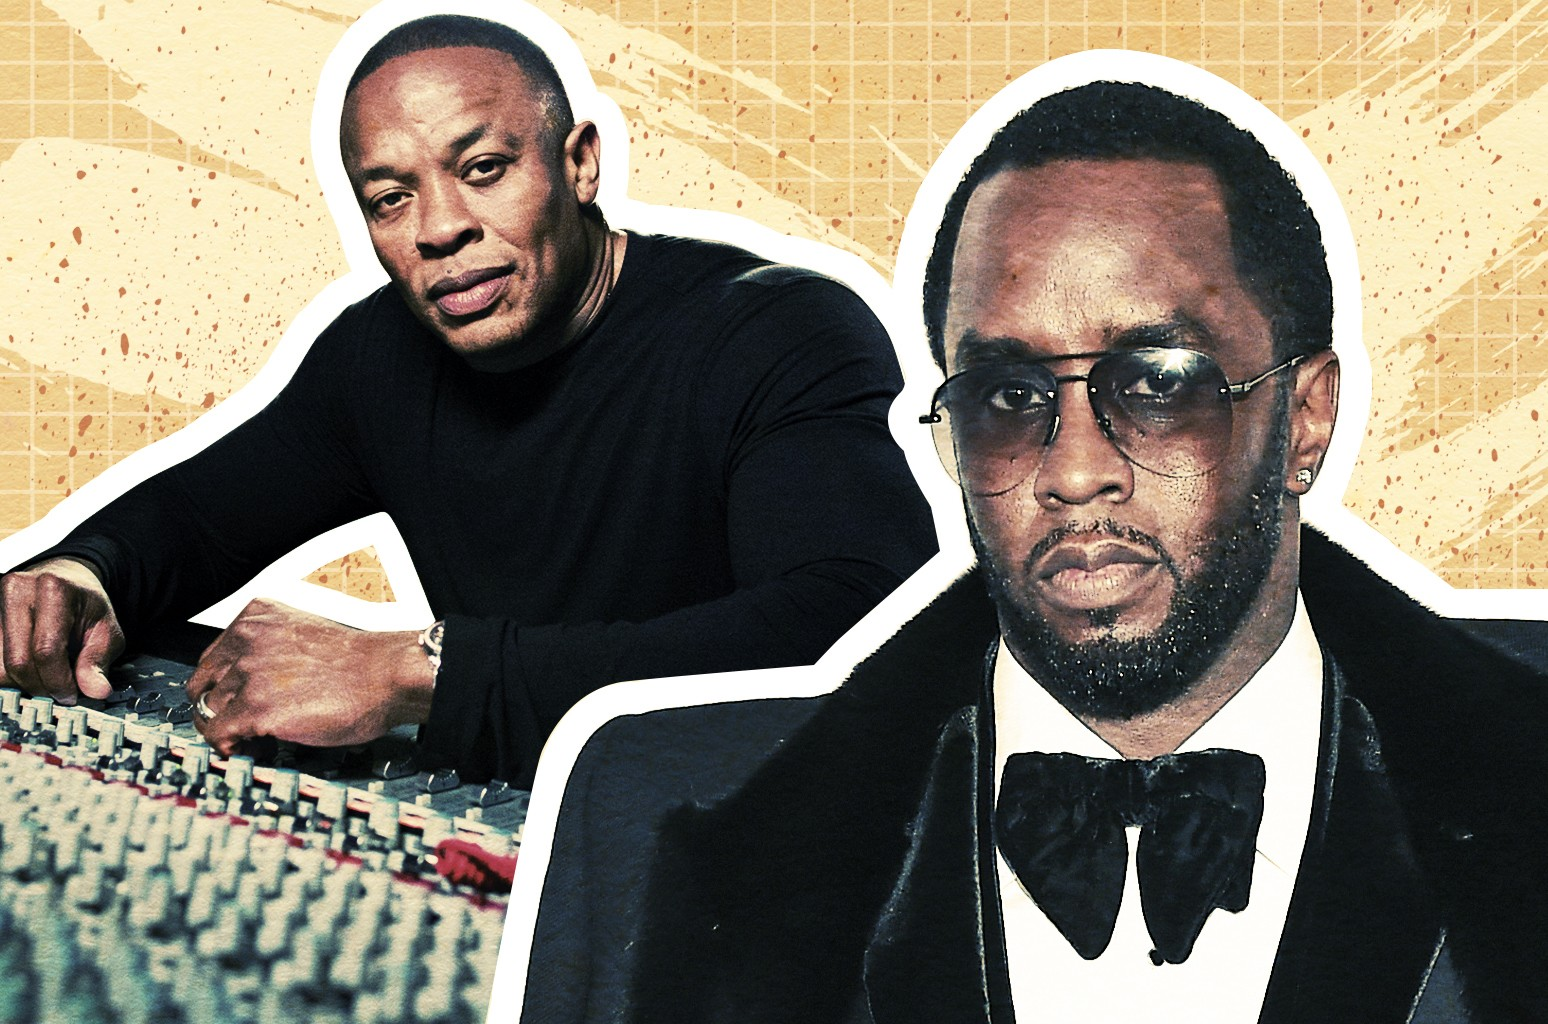 Dr. Dre and P Diddy